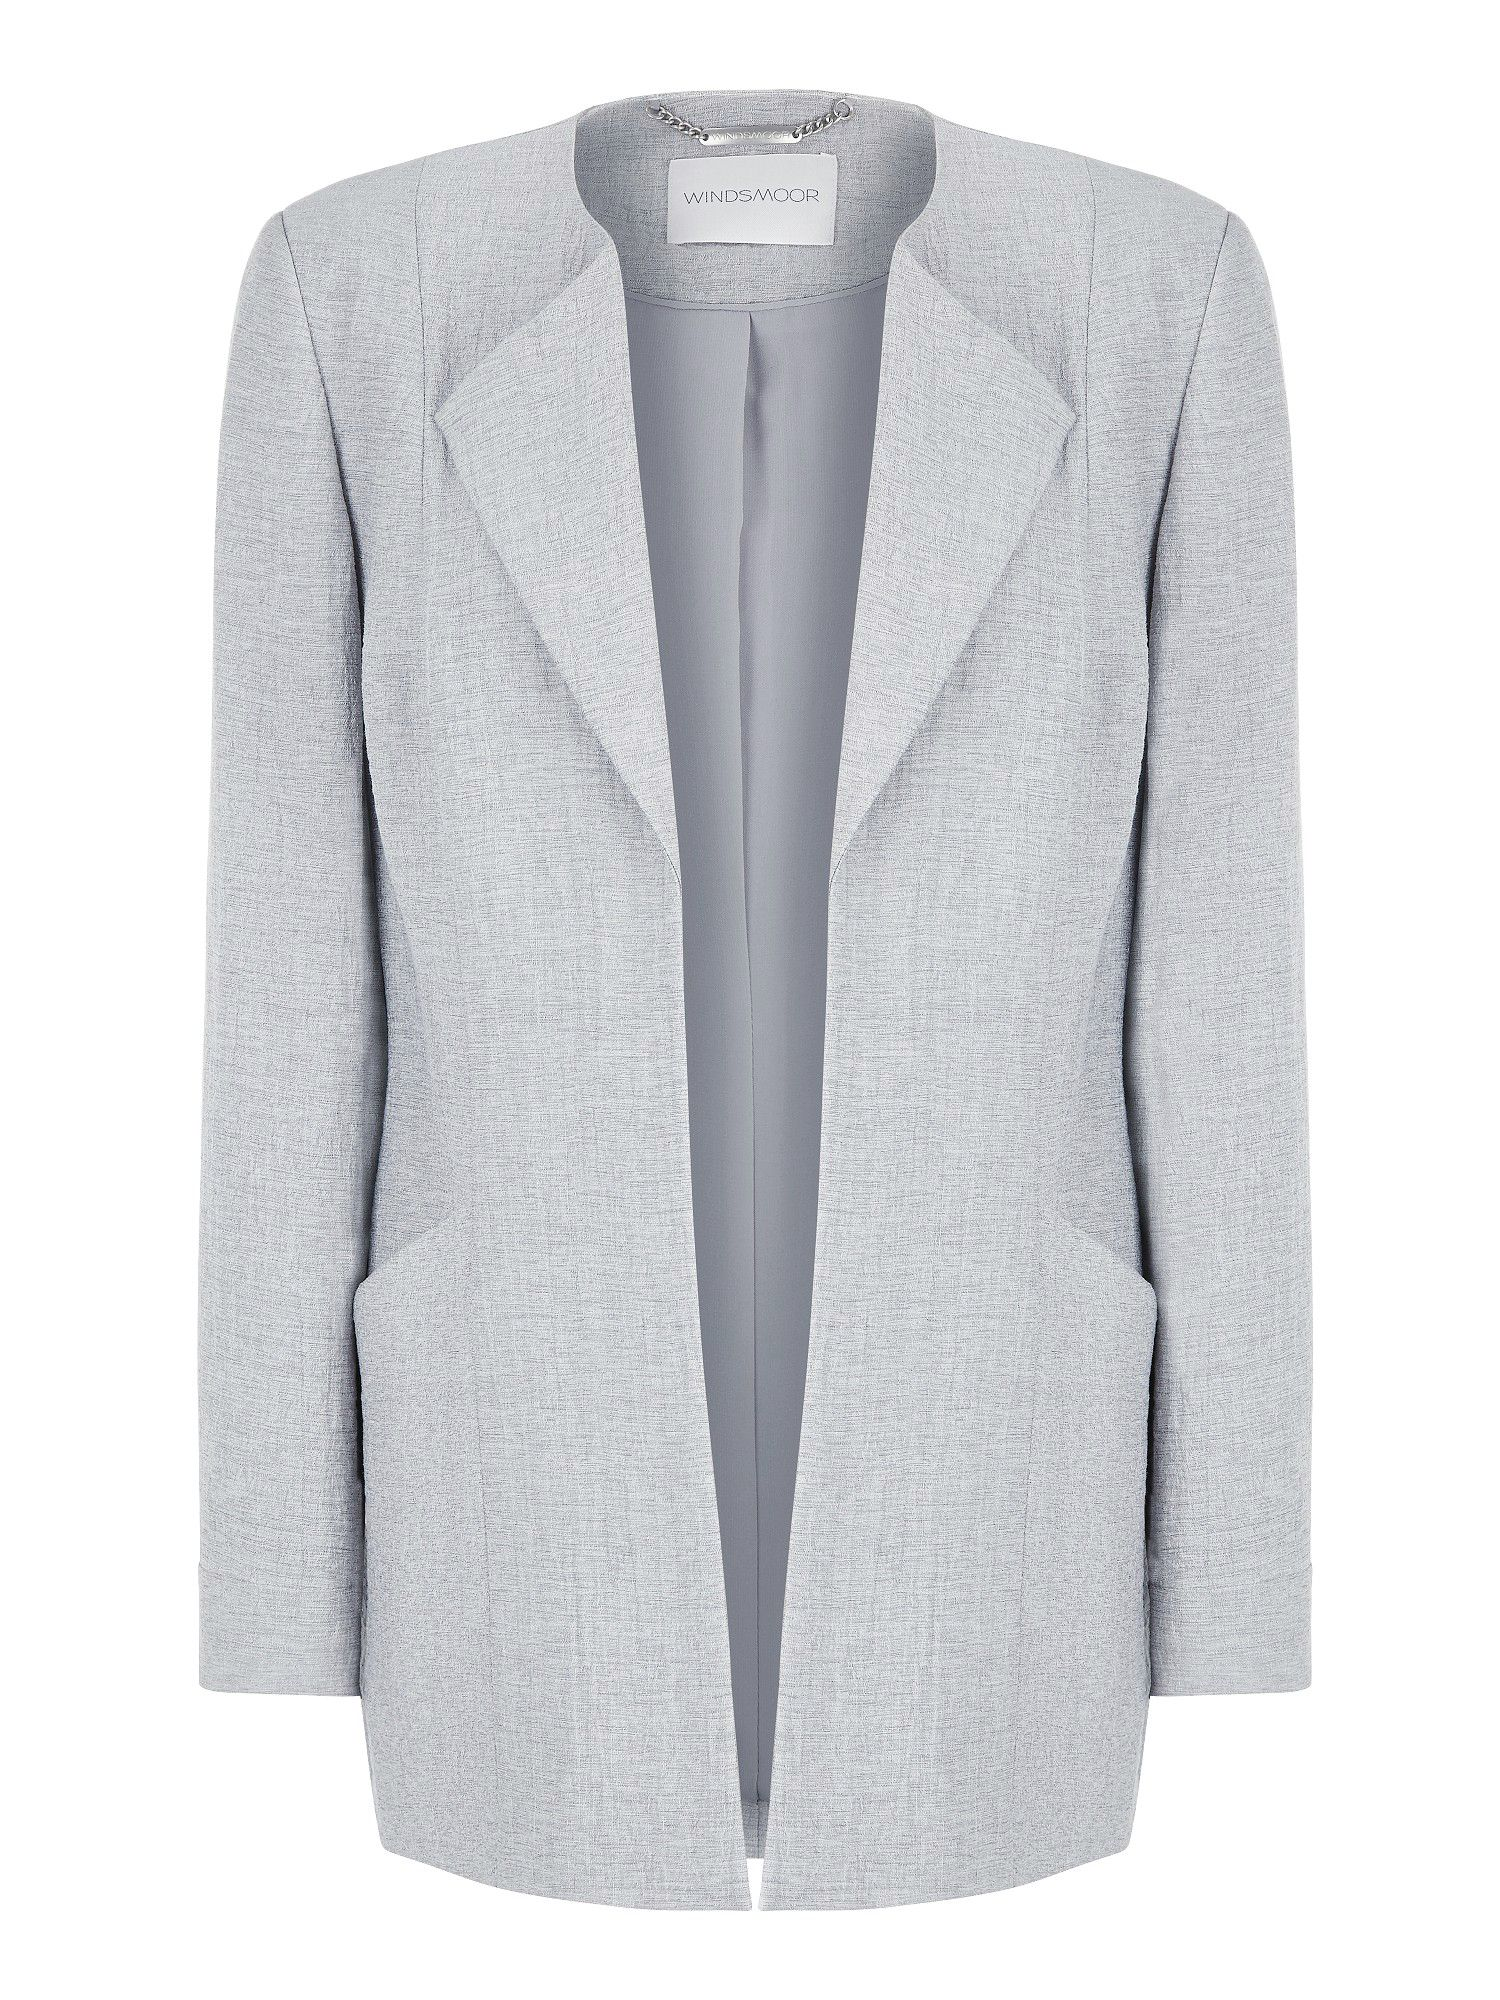 Pale grey longline jacket